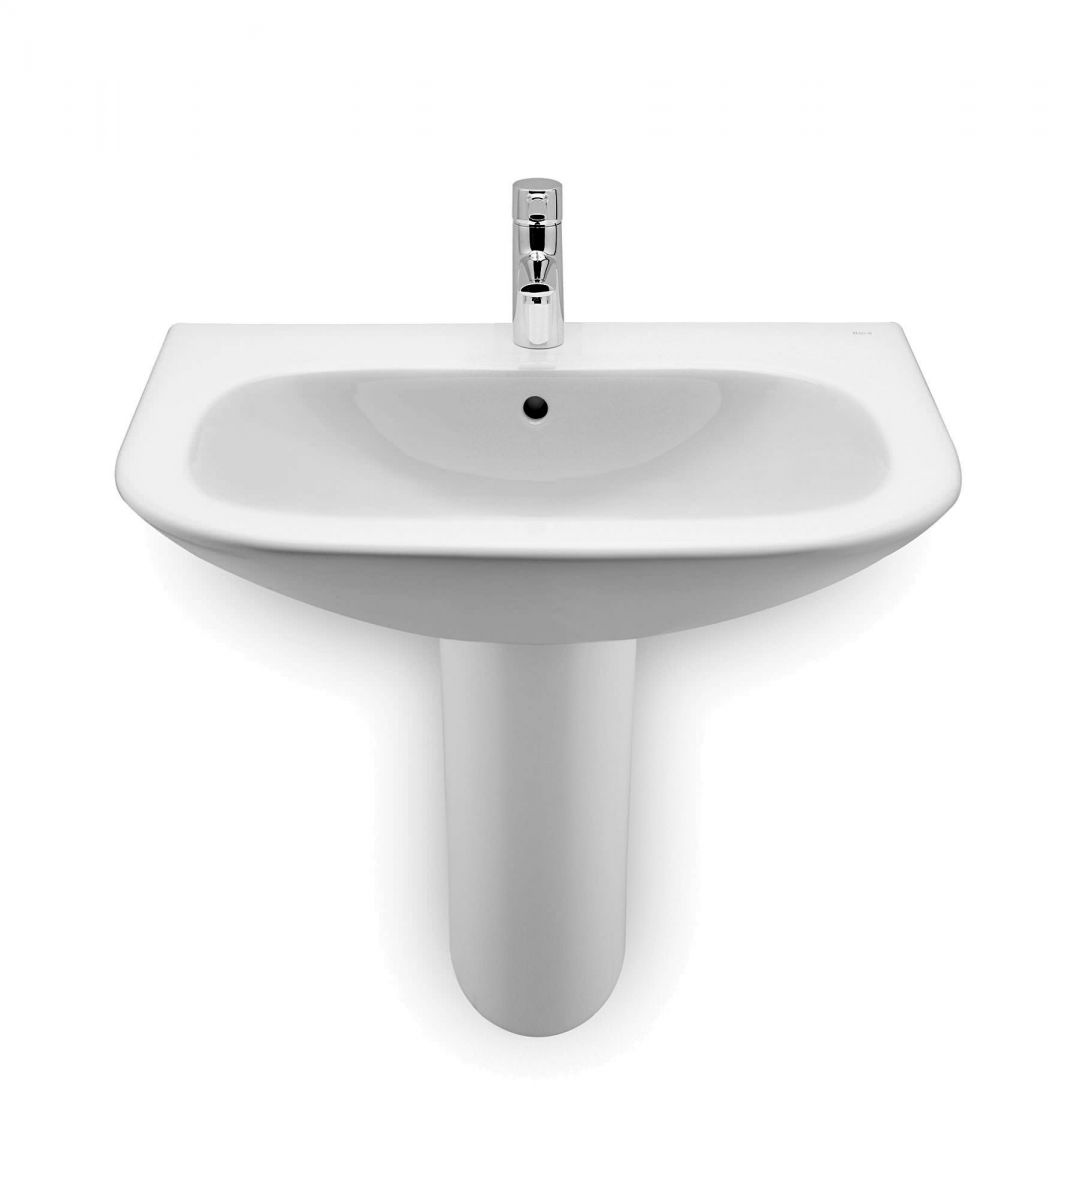 roca nexo wall hung basin - Roca Wash Basin